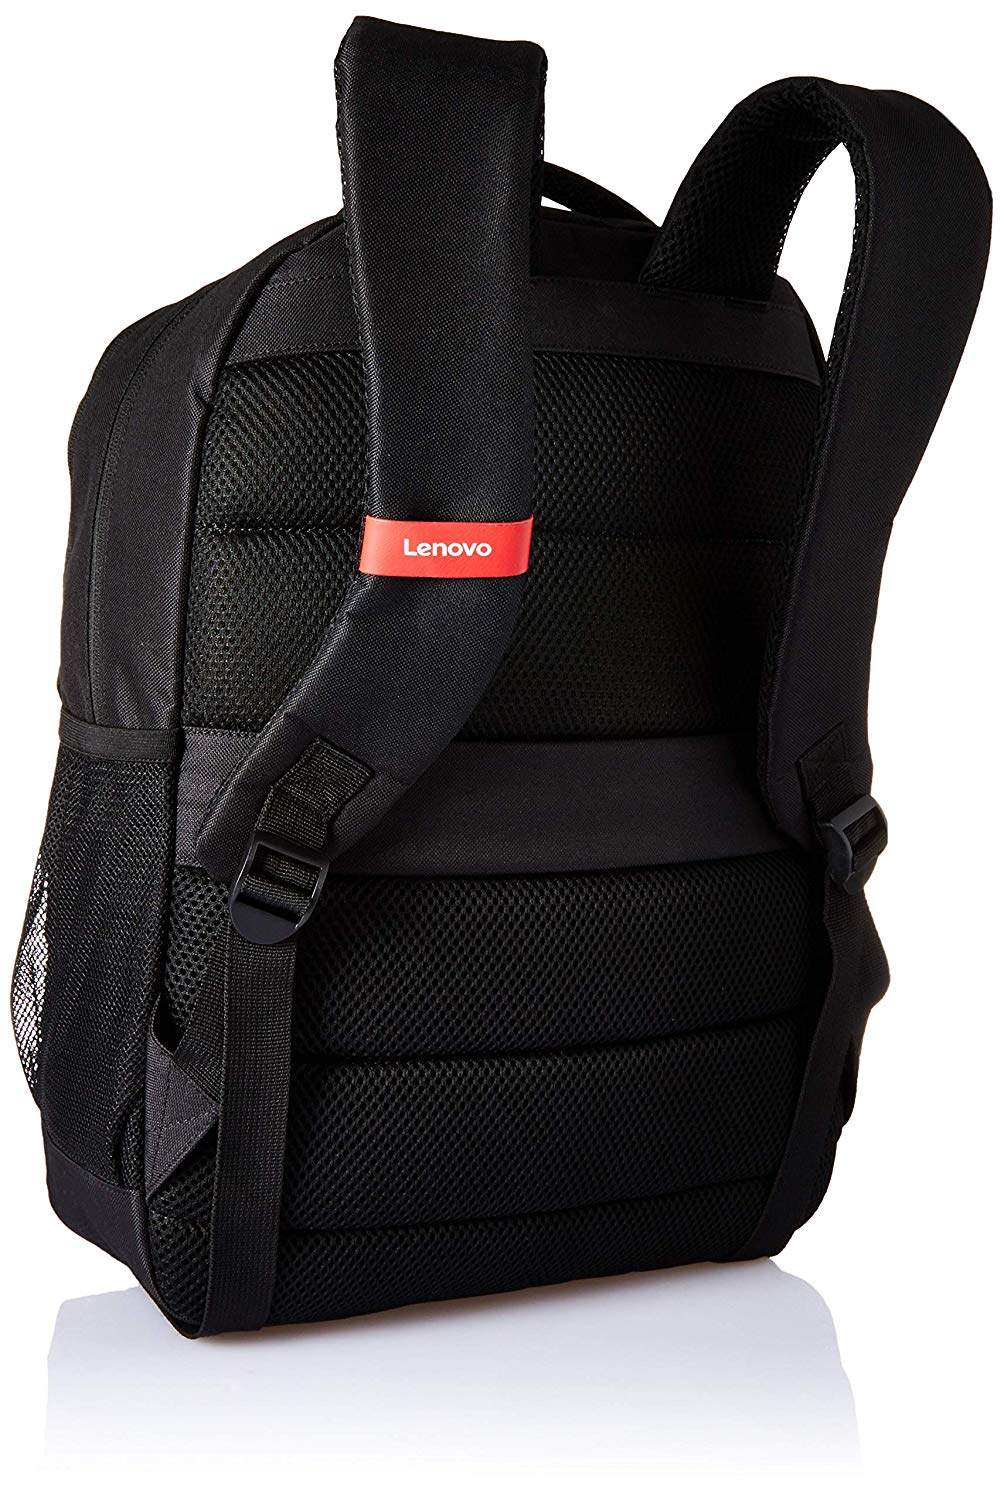 Lenovo 15.6 Inch Laptop Everyday Backpack (Black)